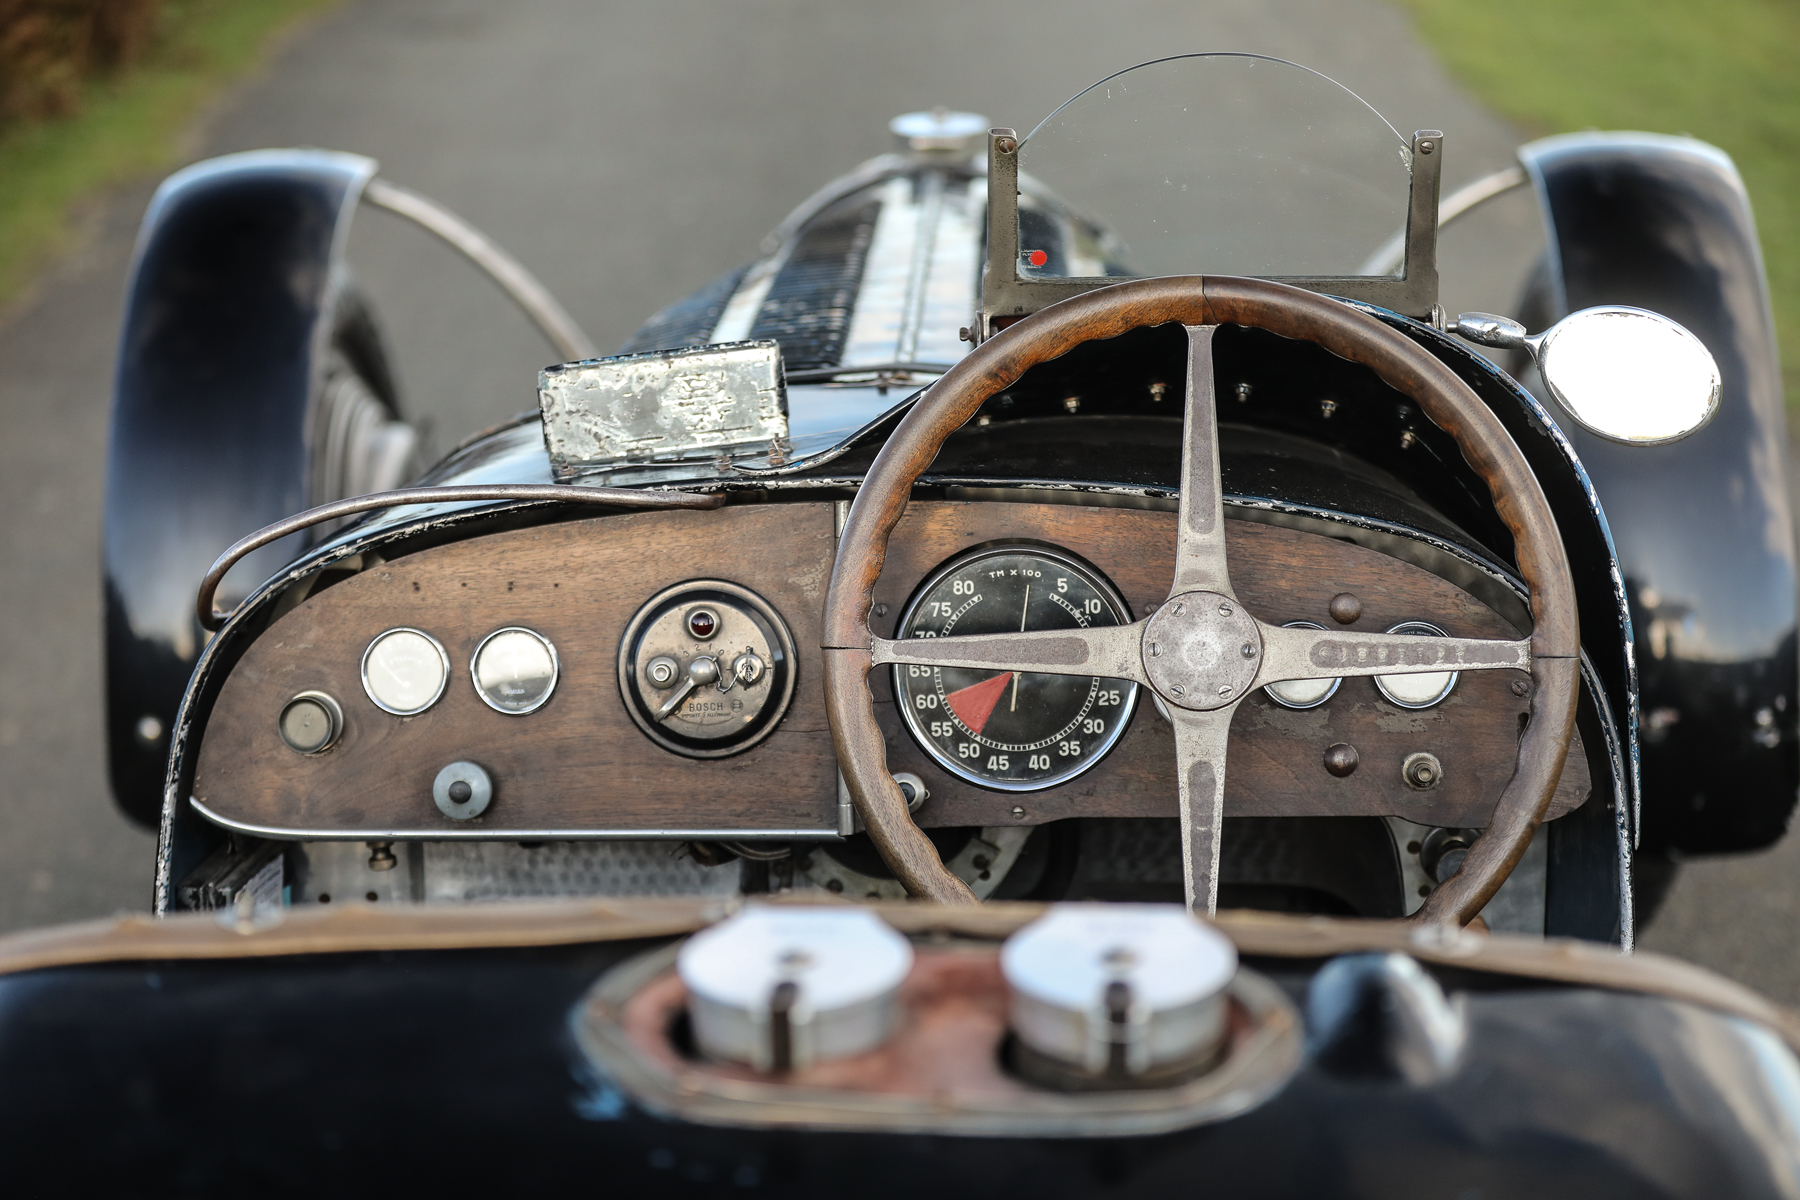 1934 Bugatti Type 59 interior cockpit